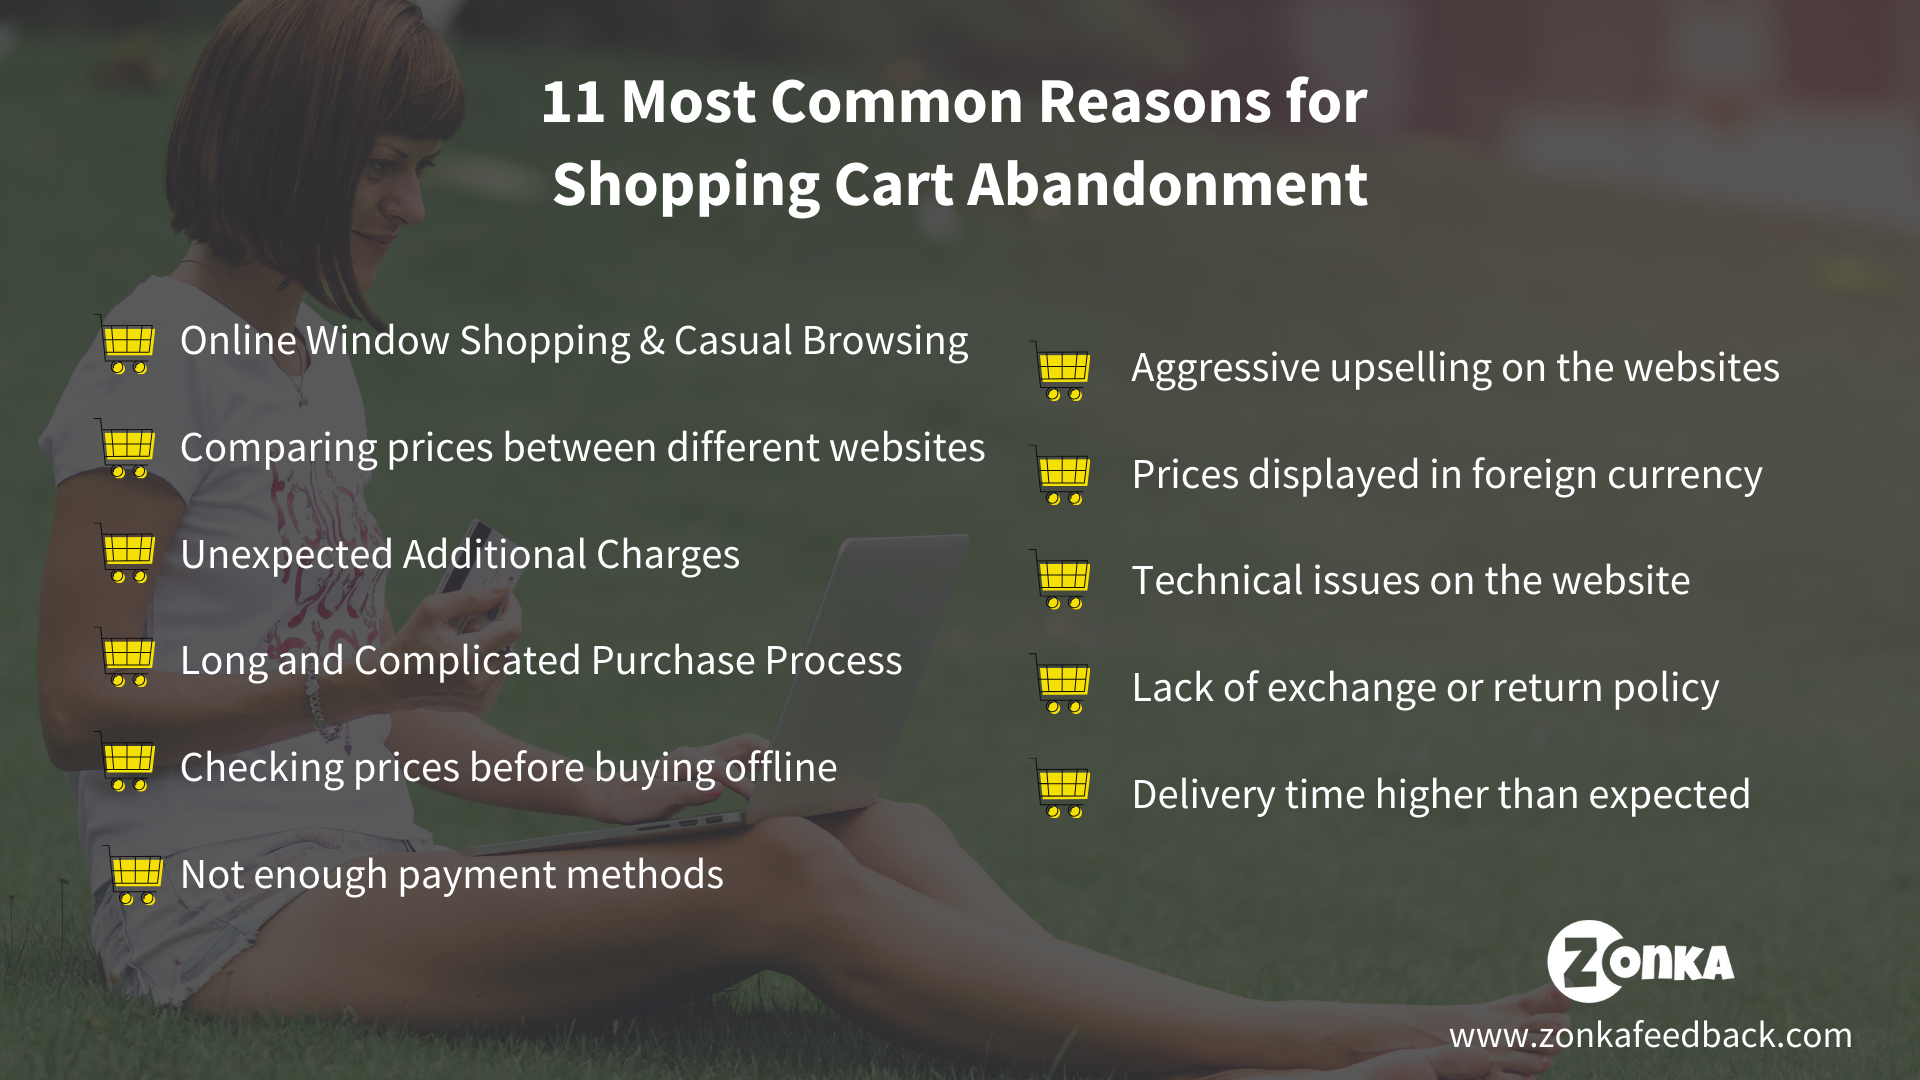 11 Most Common Reasons for Shopping Cart Abandonment-1